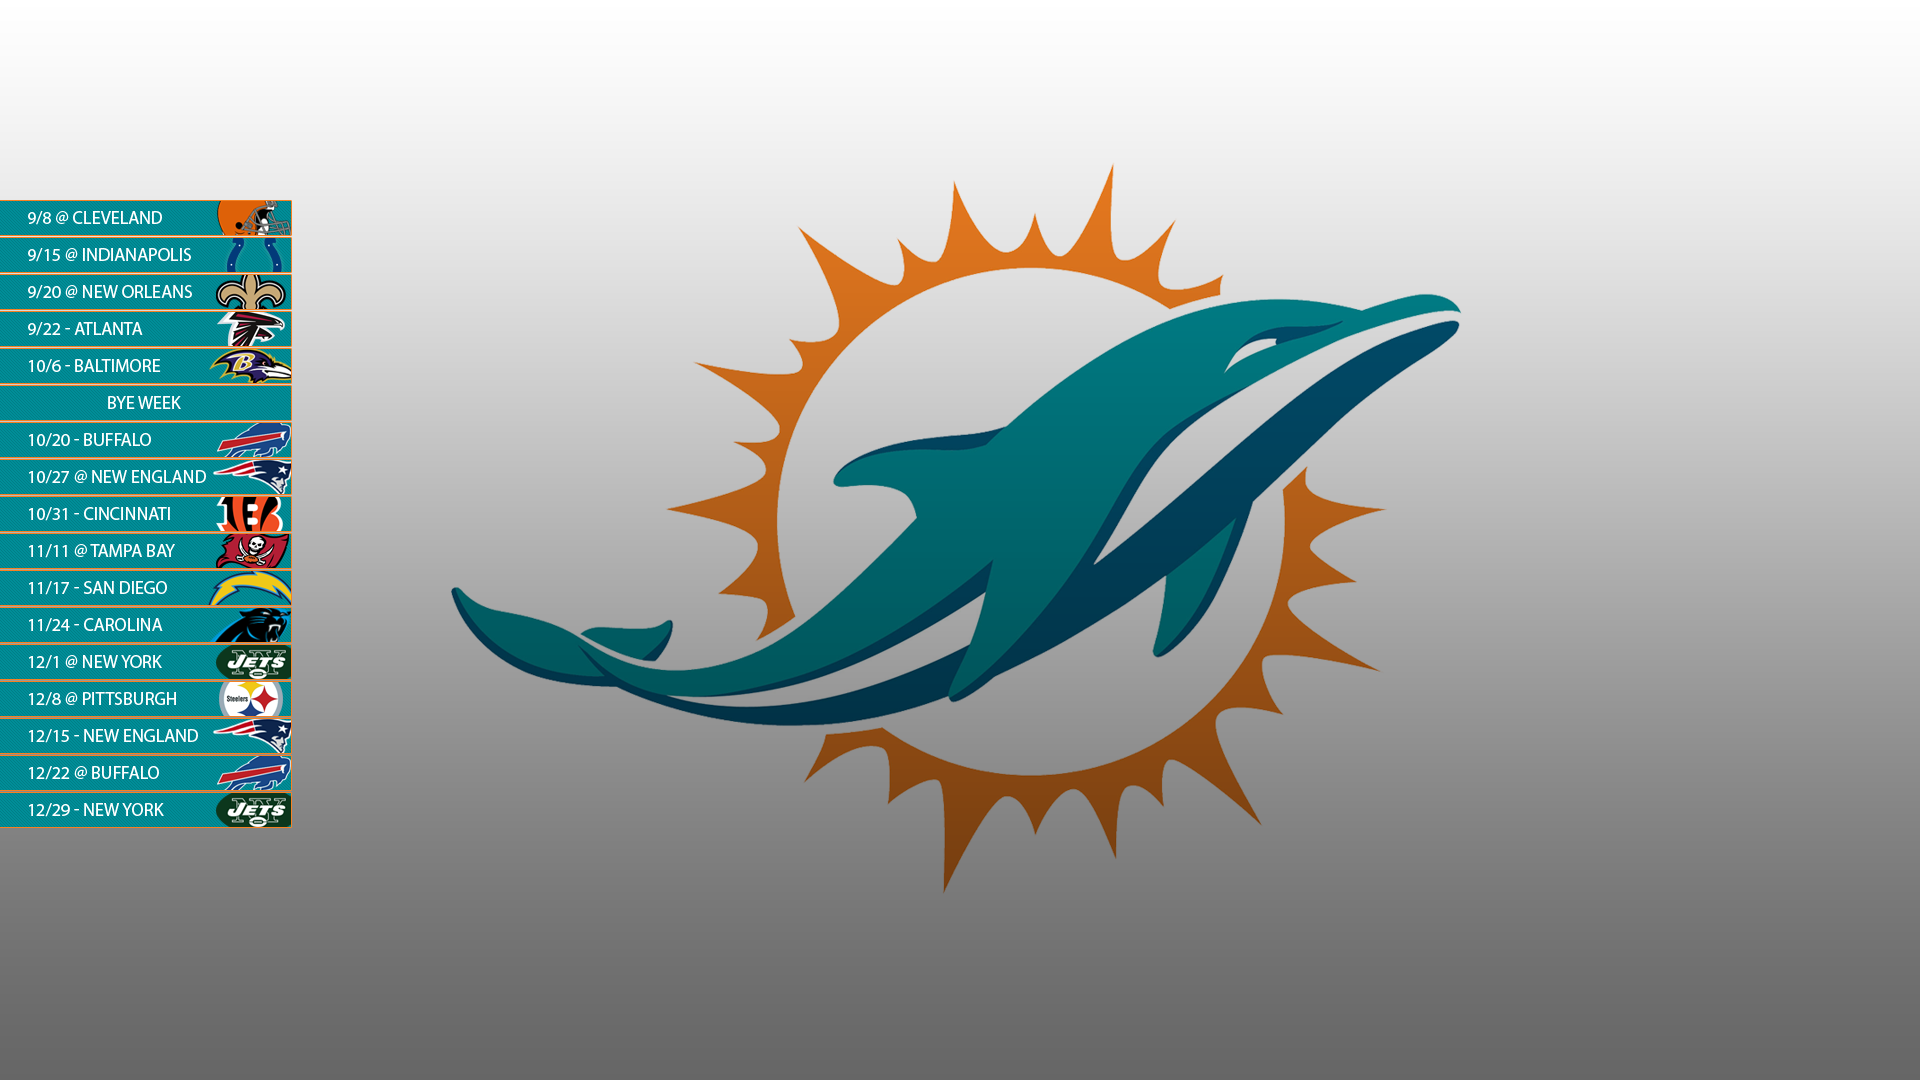 Miami Dolphins Wallpaper 2013 Miami dolphins fan page 1920x1080